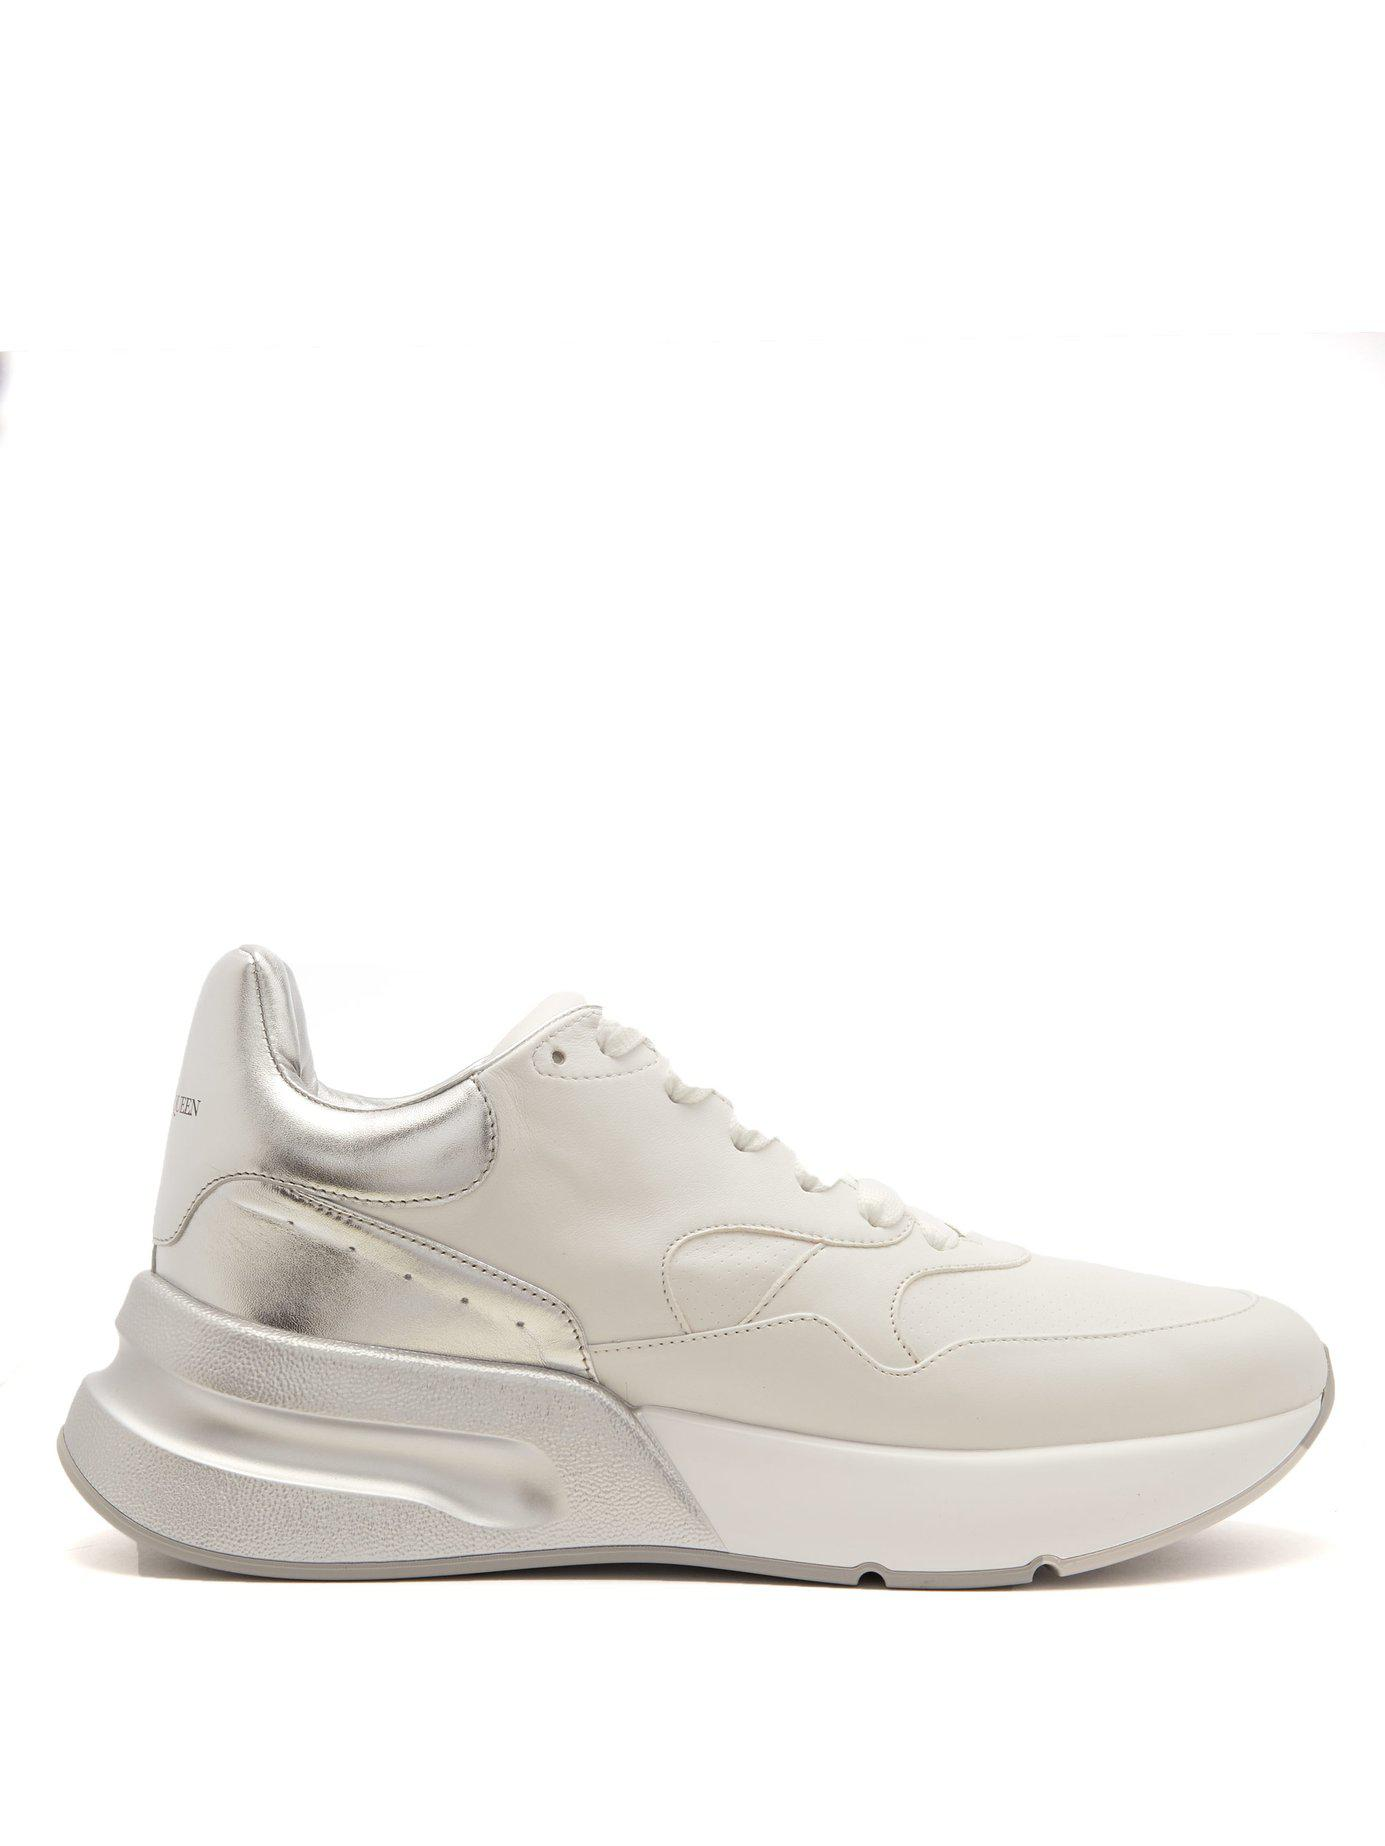 e0f4781a81ad Alexander McQueen. Men s White Runner Raised Sole Low Top Leather Trainers